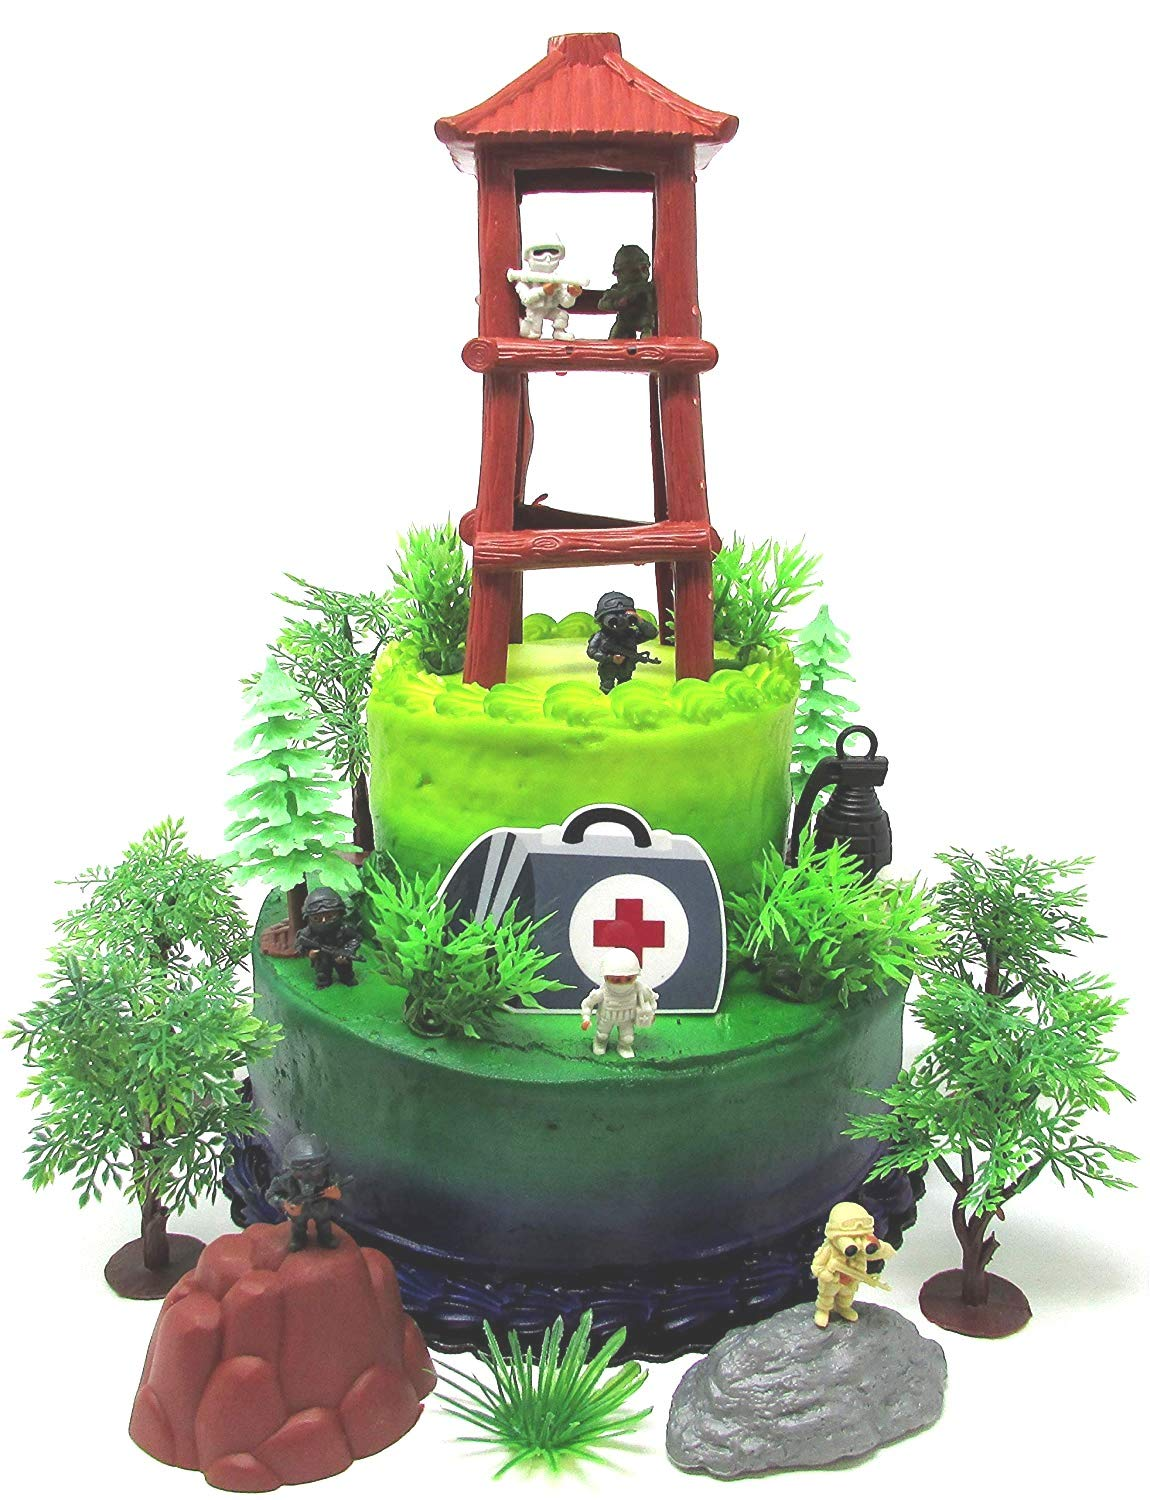 Battle Crusade Survival Royale Gaming Themed Cake Topper with Battle Figures and Resource Themed Accessories